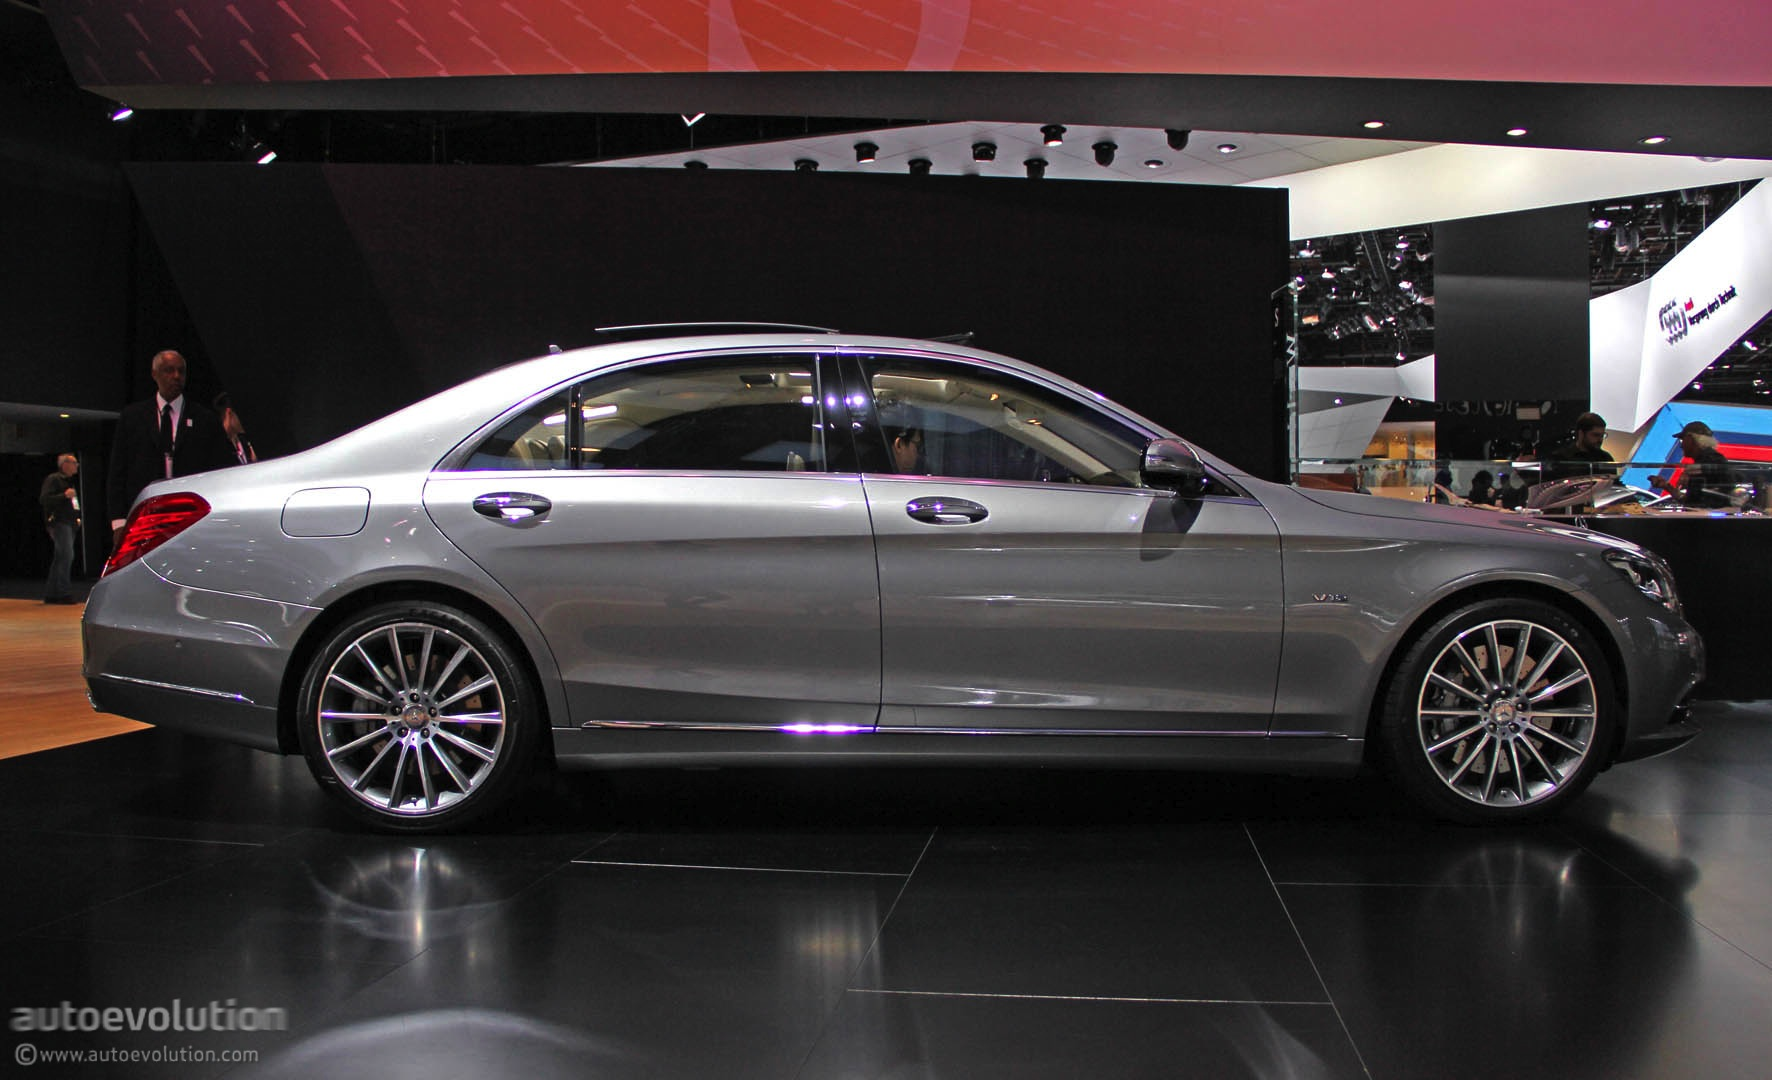 Mercedes s600 debuts in detroit with 6 liter v12 live for Mercedes benz s600 2014